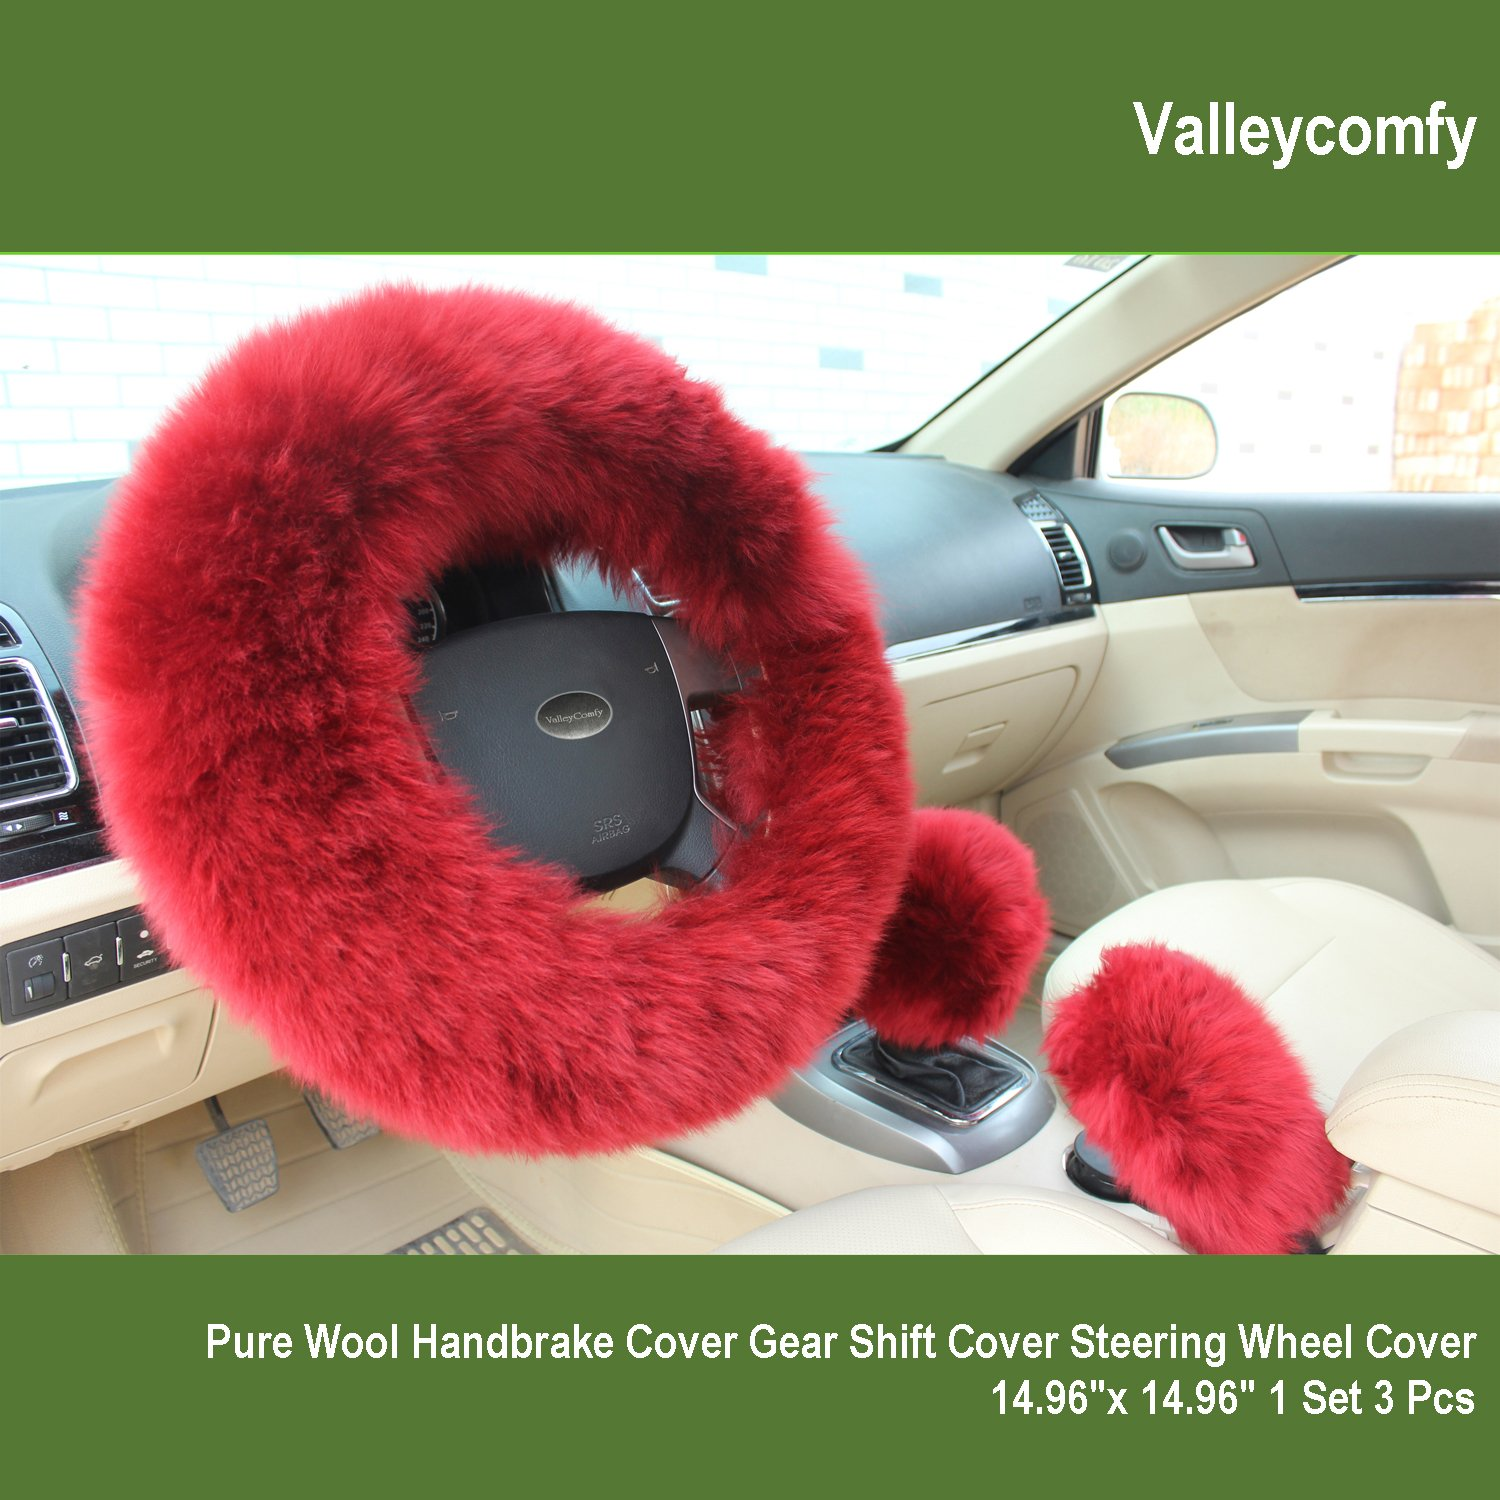 Valleycomfy Fashion Steering Wheel Covers for Women/Girls/Ladies Australia Pure Wool 15 Inch 1 Set 3 Pcs, Wine Red FXPF02